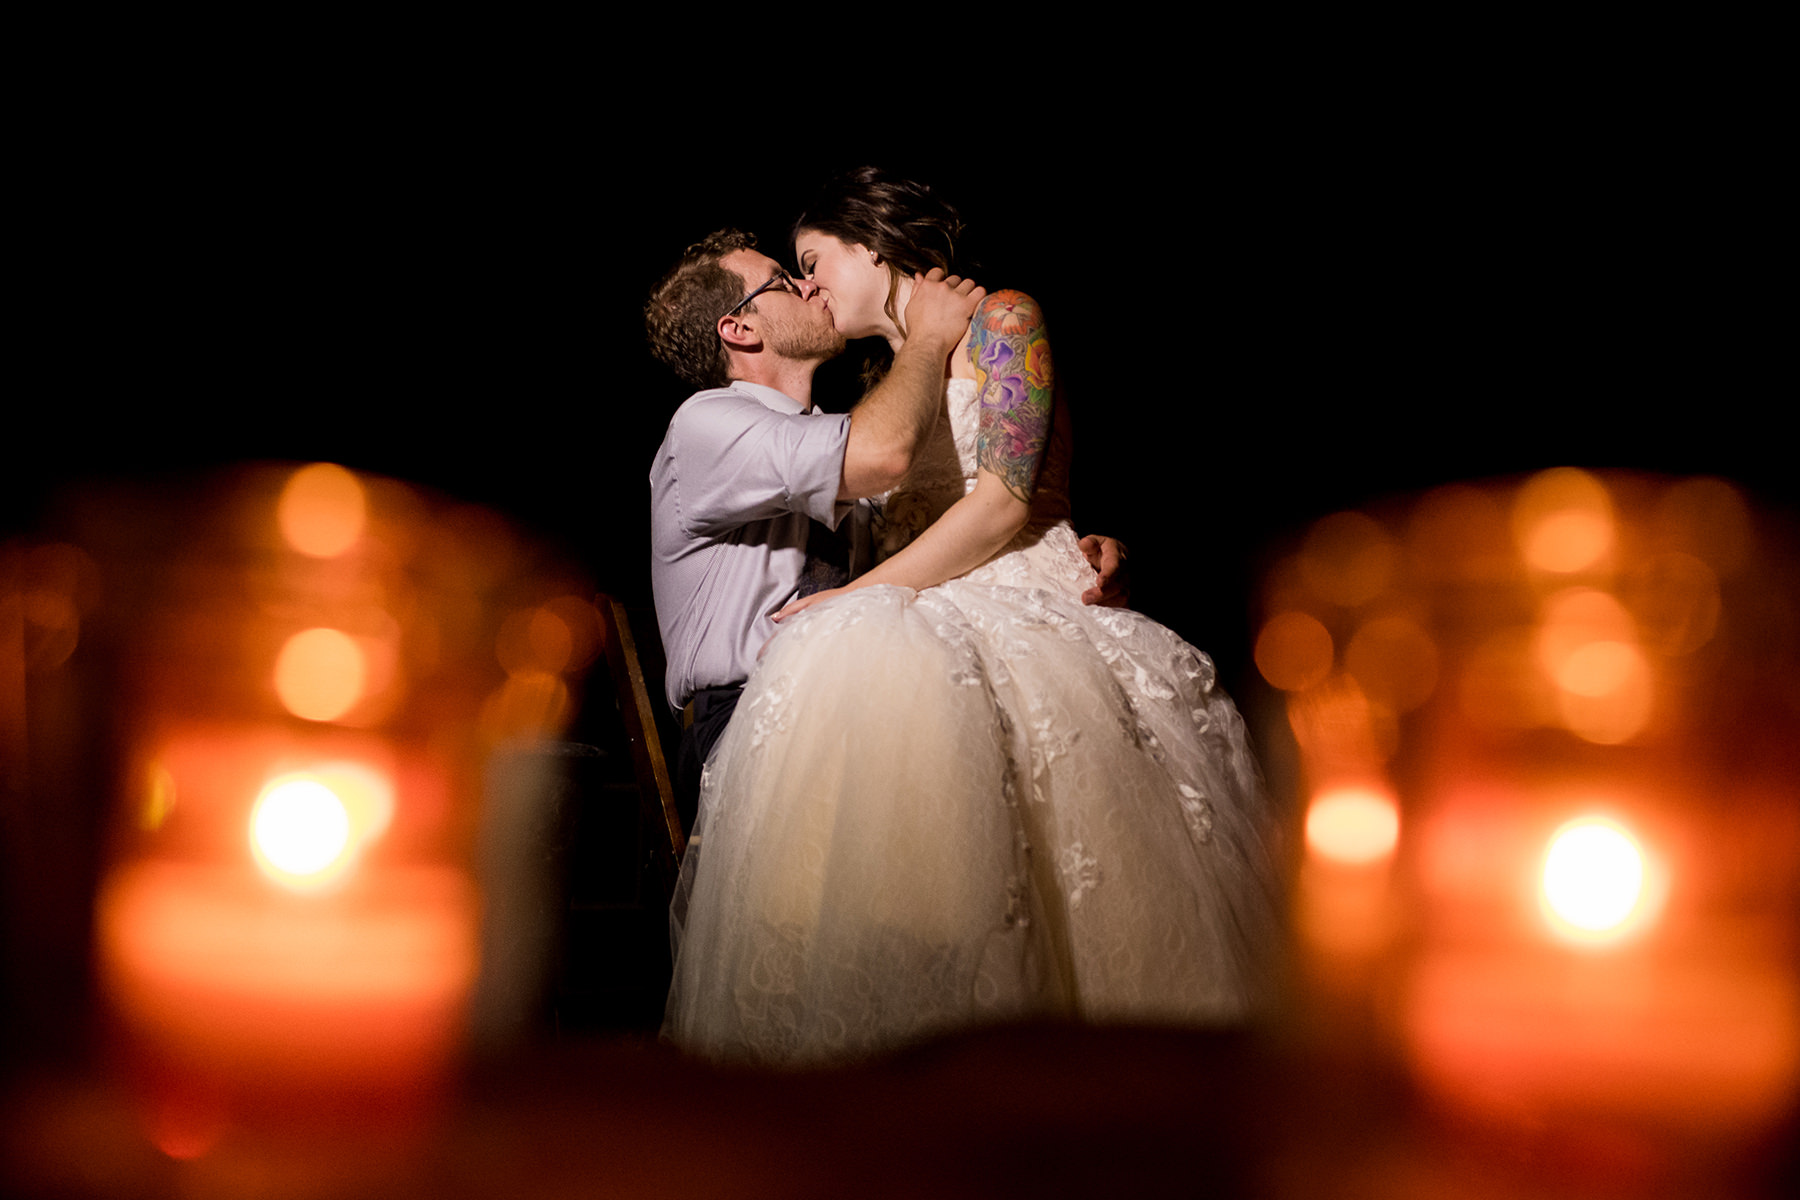 creative night wedding portrait